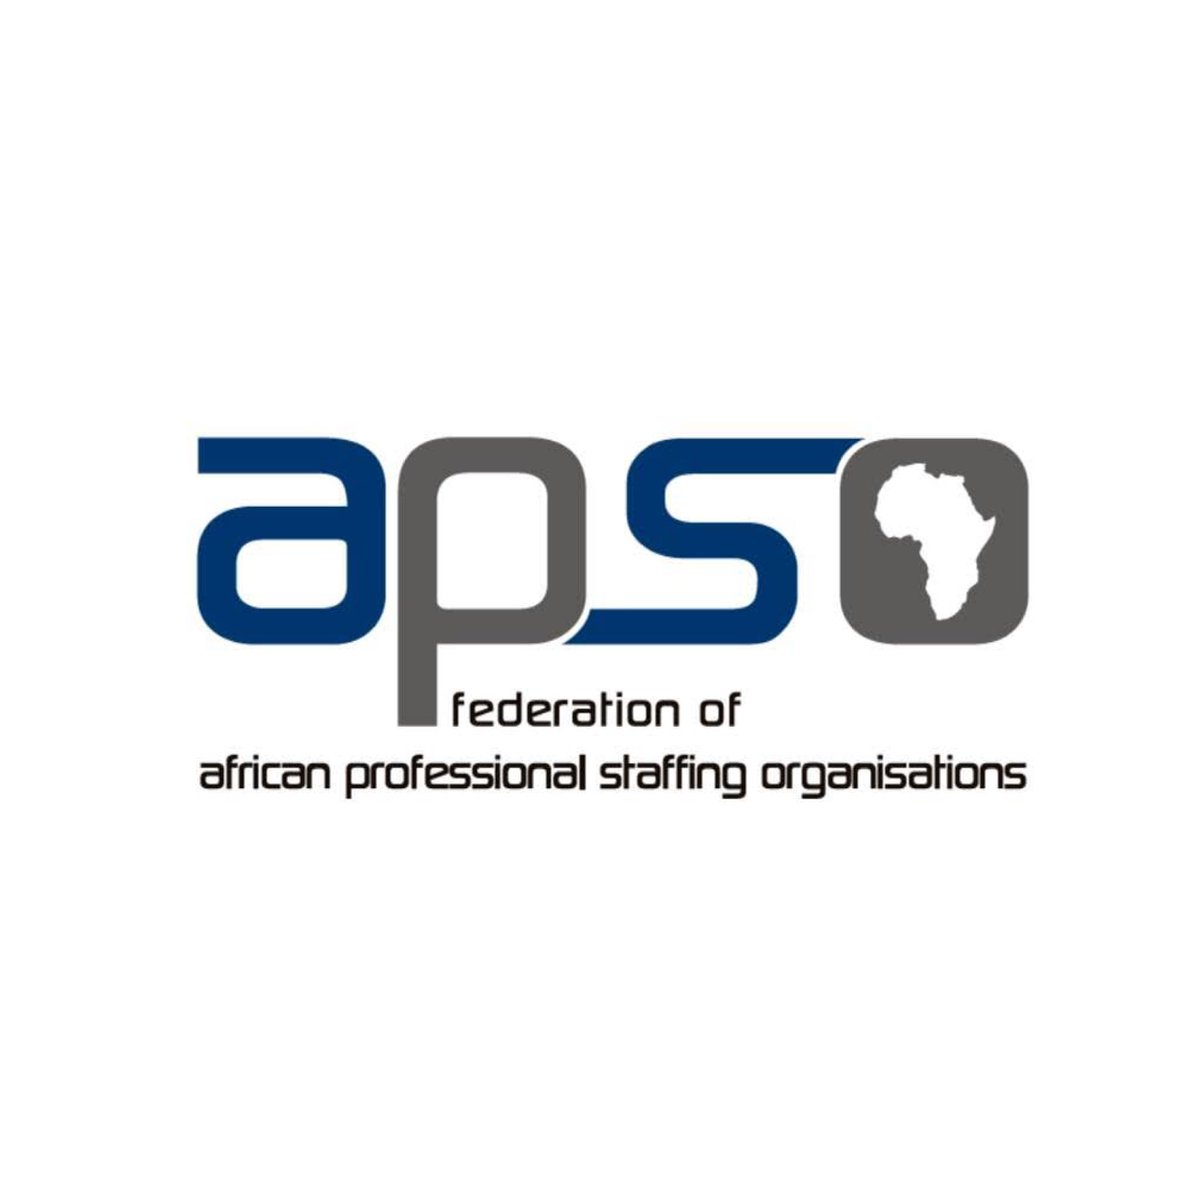 We will be training at @apsoza 👈🏻 on #digitalrecruitment2020 on the 18th of March. To book your space please book on the APSO website alternatively please send us your details to forward on for reg. Book now while seats are still available.😊#danielabascelli #APSO2020 https://t.co/iH0DstvZsQ